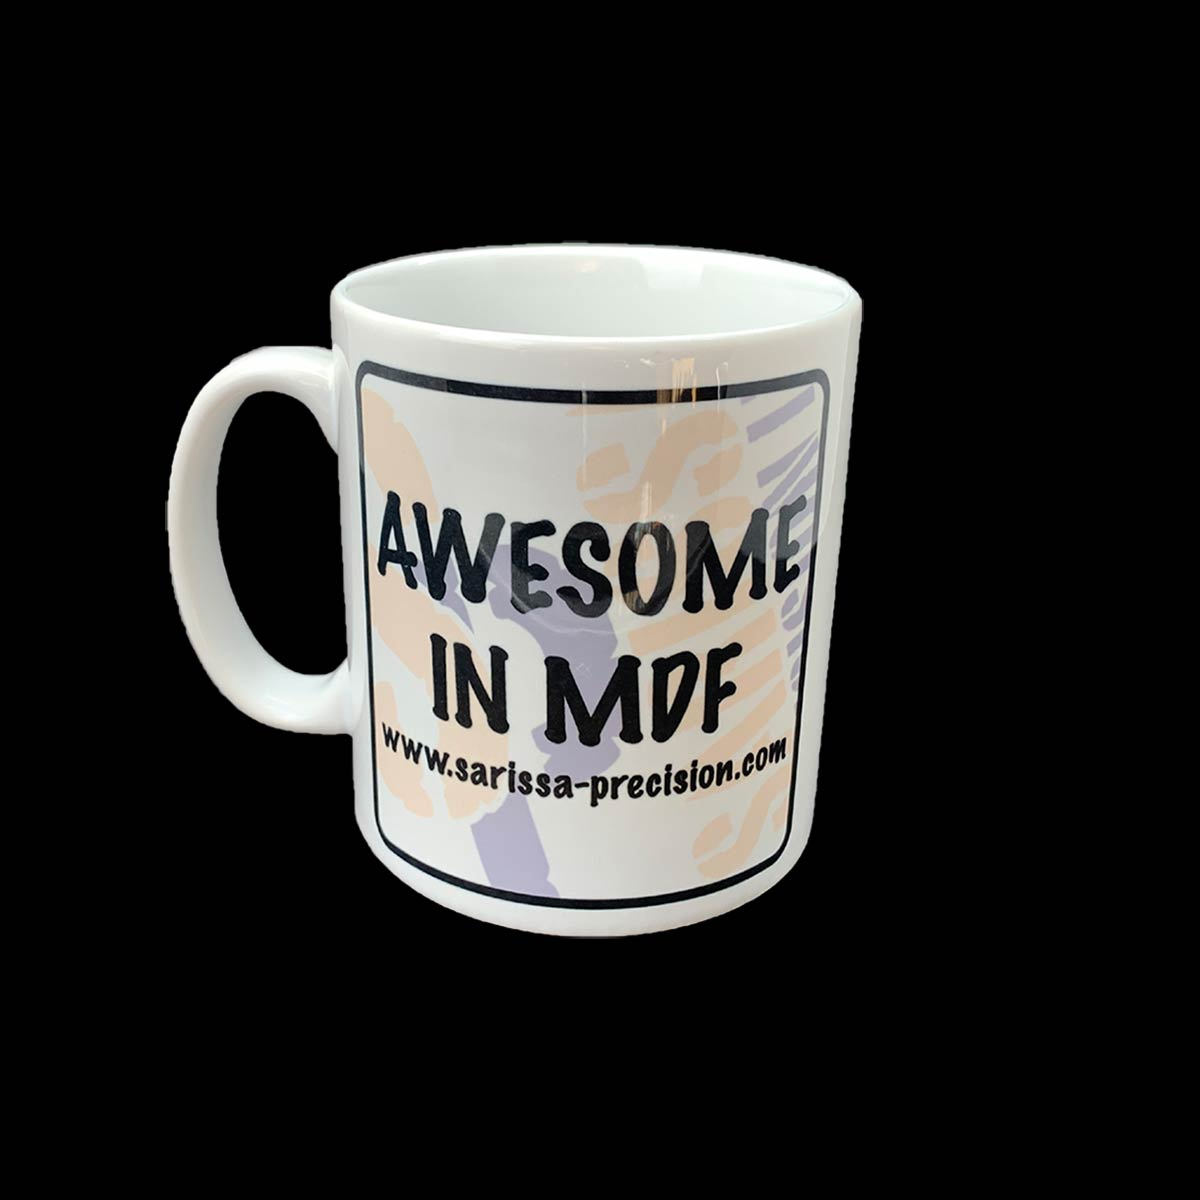 Awesome in MDF - Sarissa Mug